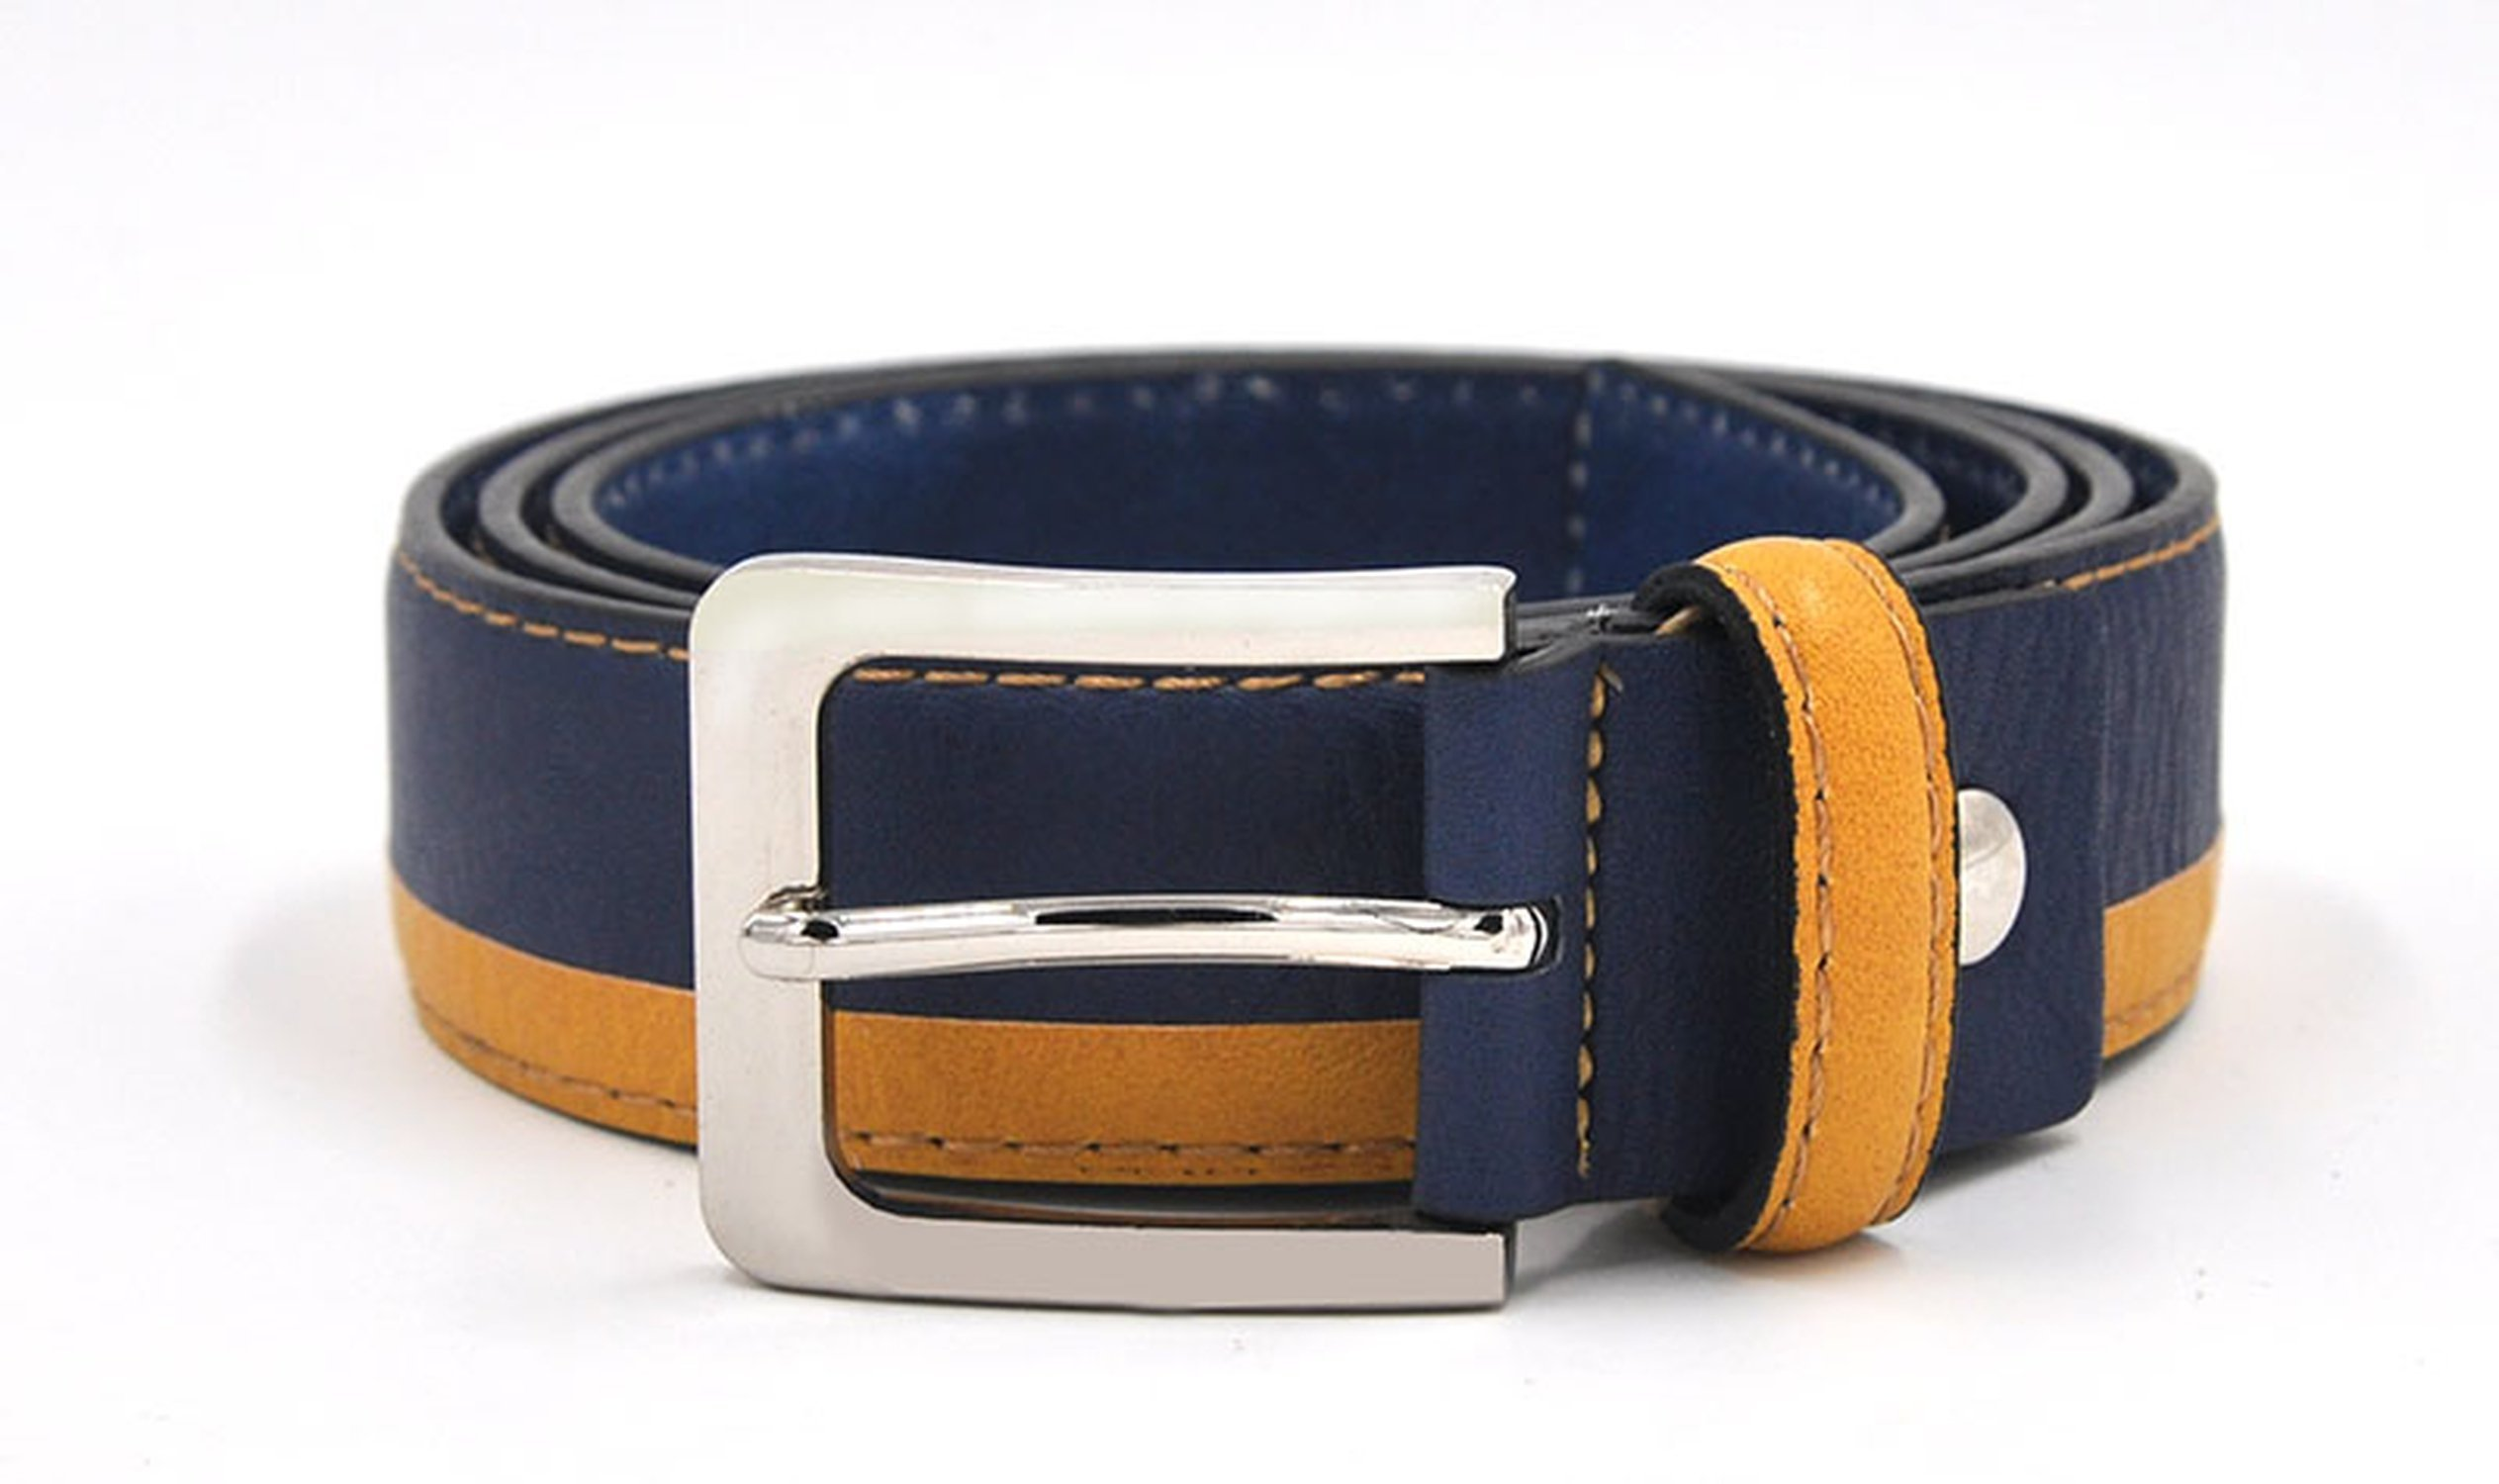 Young Man Leather Belt Italian Design Casual Men's Belts,Blue Yellow,100cm 32to35 Inch